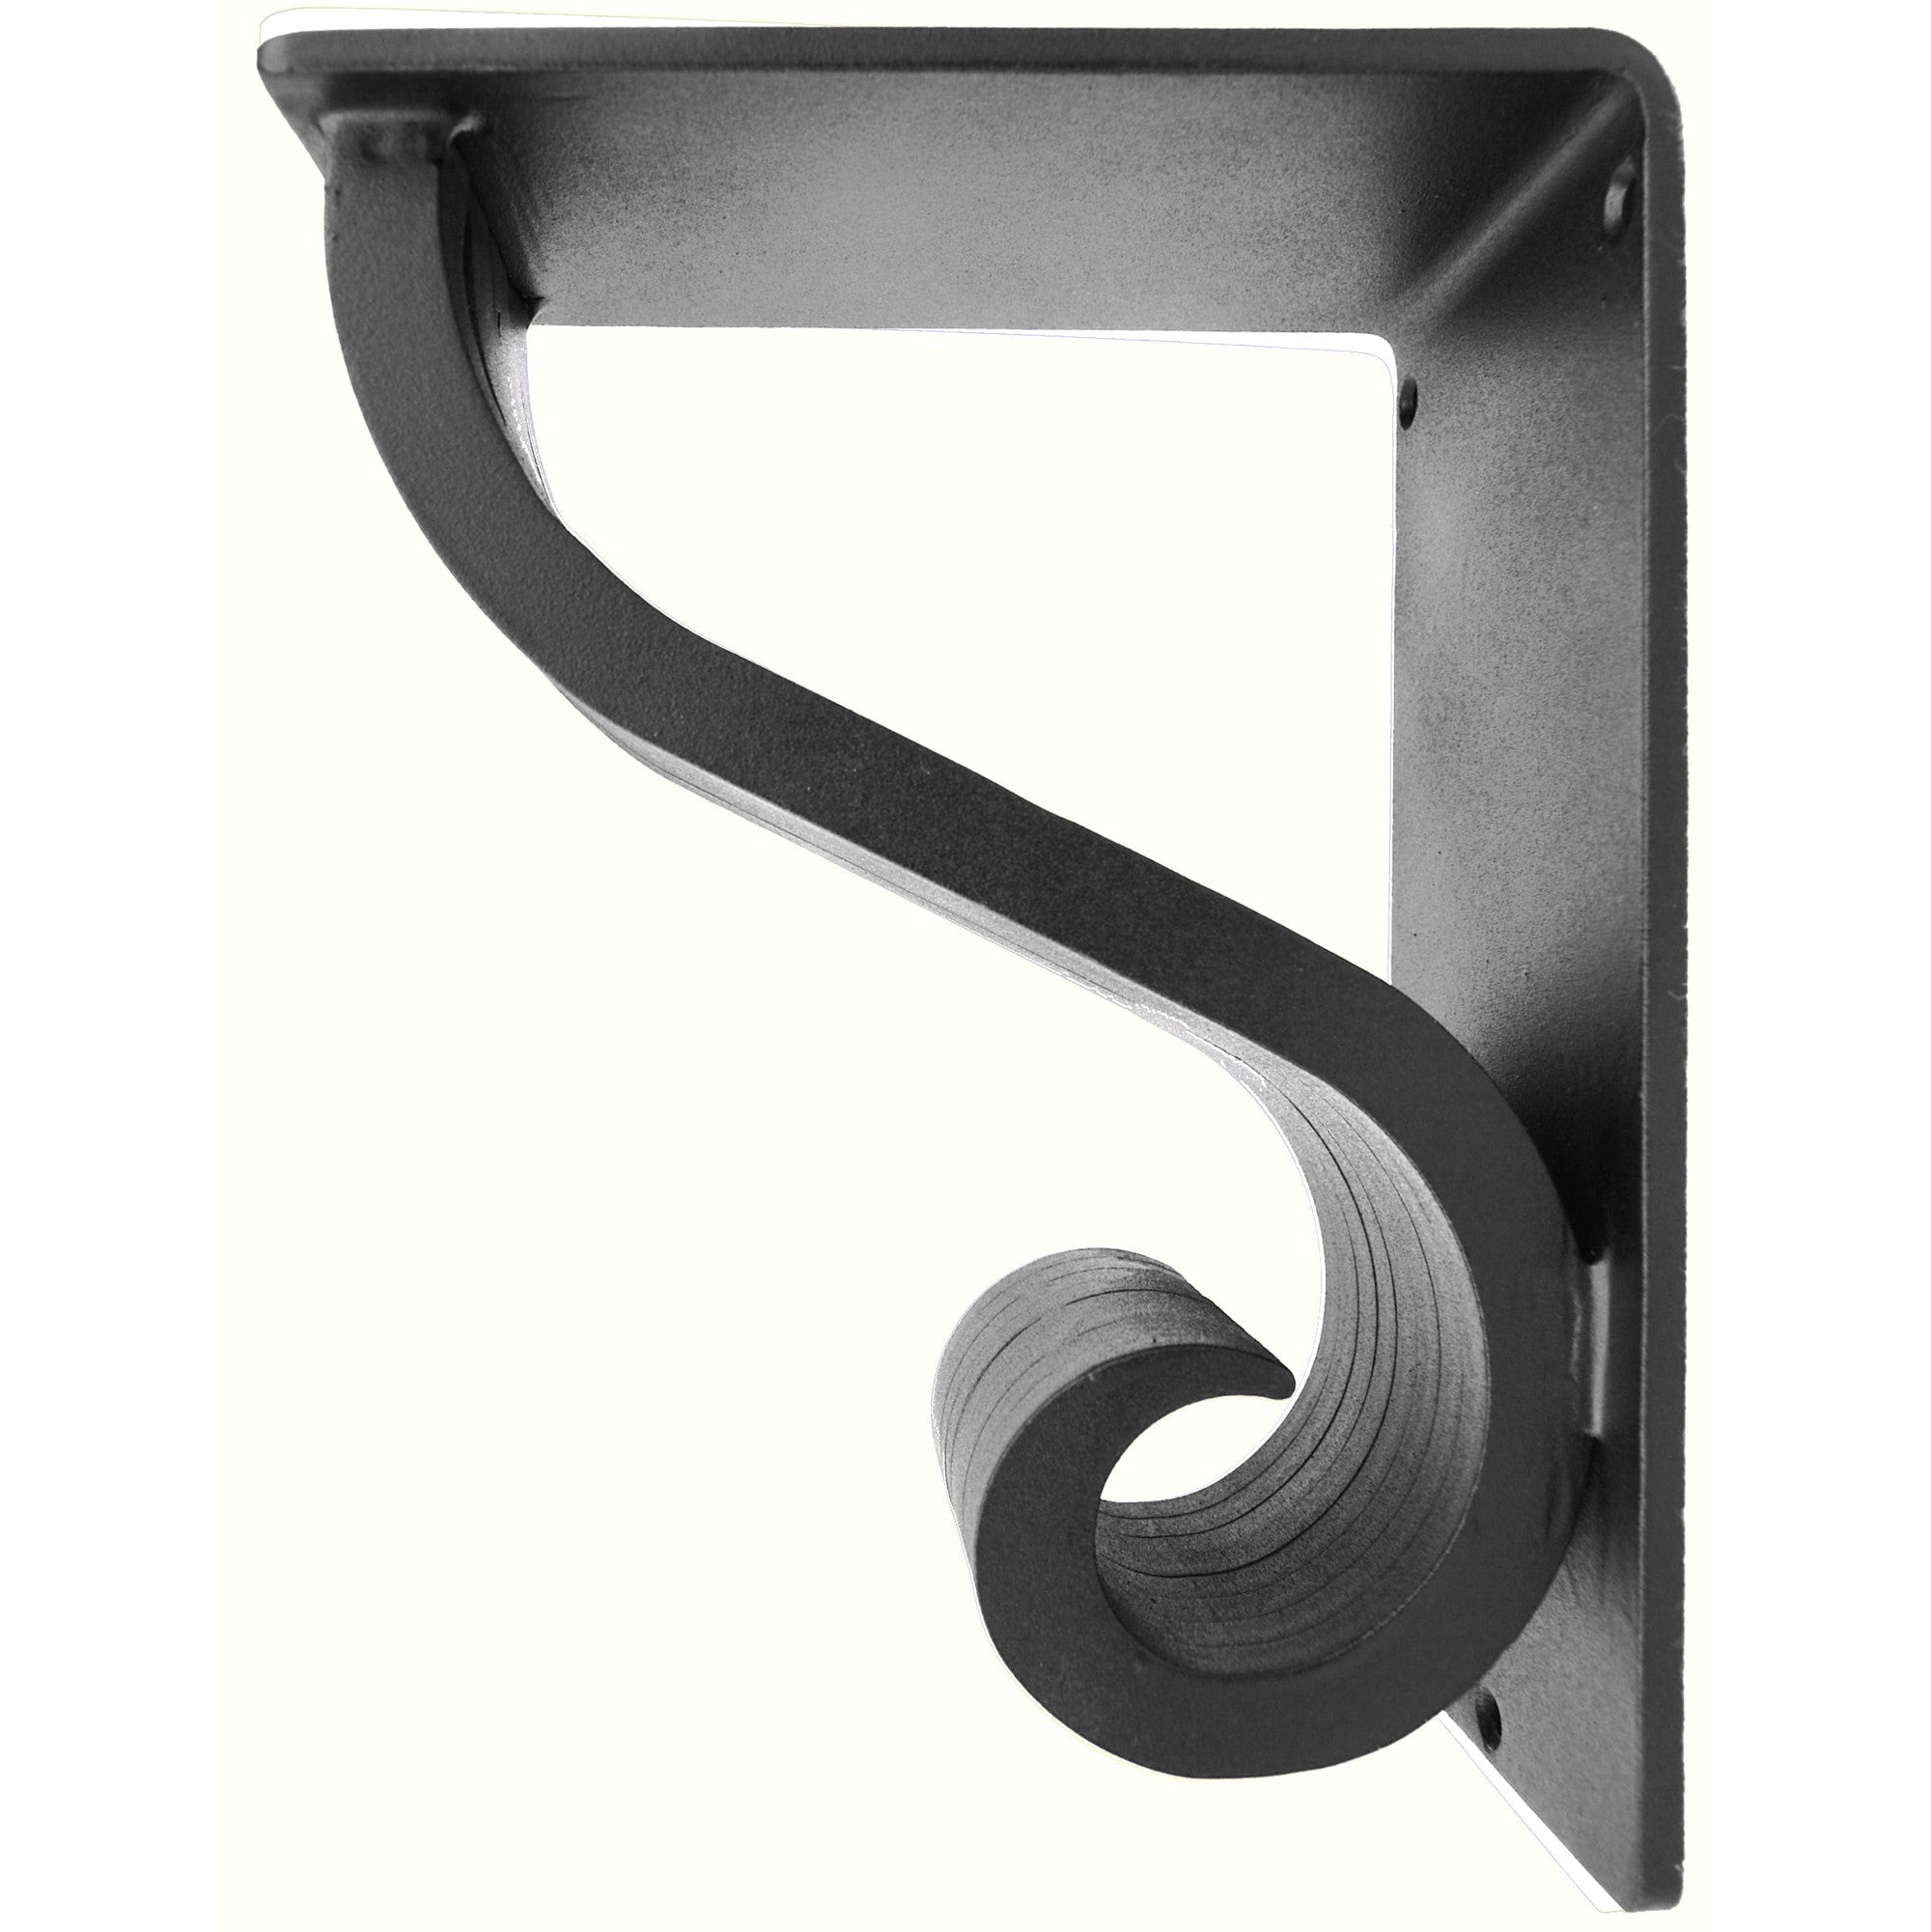 4-inch wide 5.5 x 8 Camden Iron Corbel with black iron finish